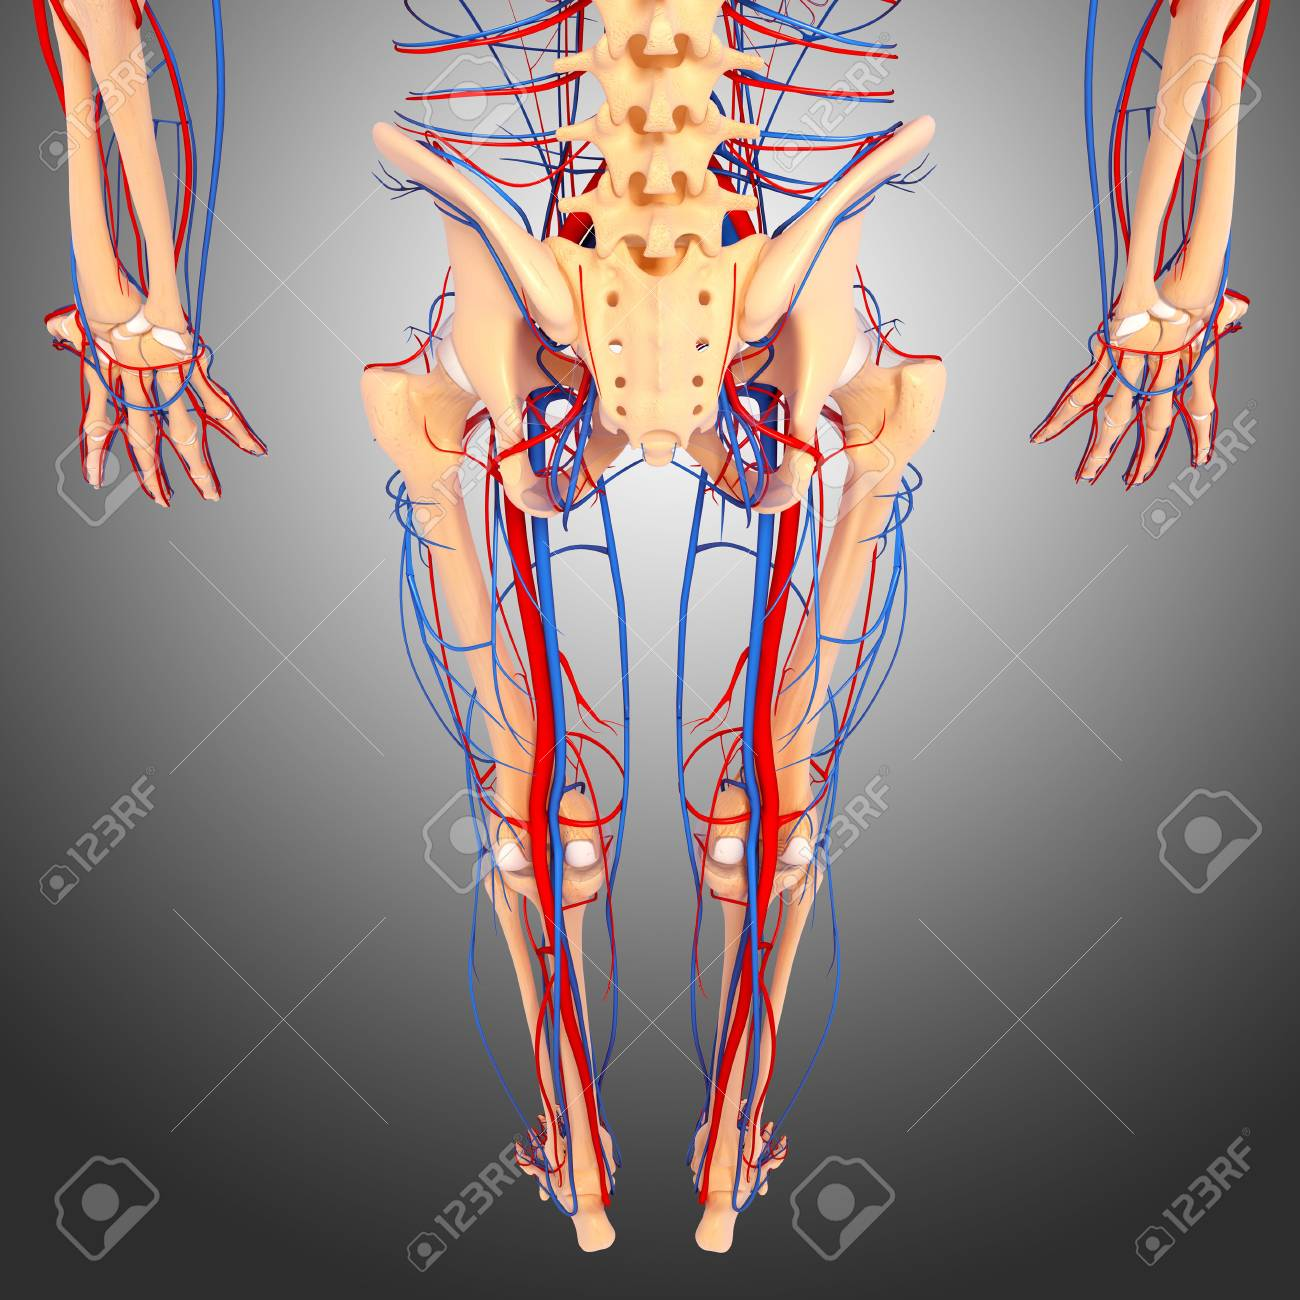 Lower Body Anatomy,artwork Stock Photo, Picture And Royalty Free ...